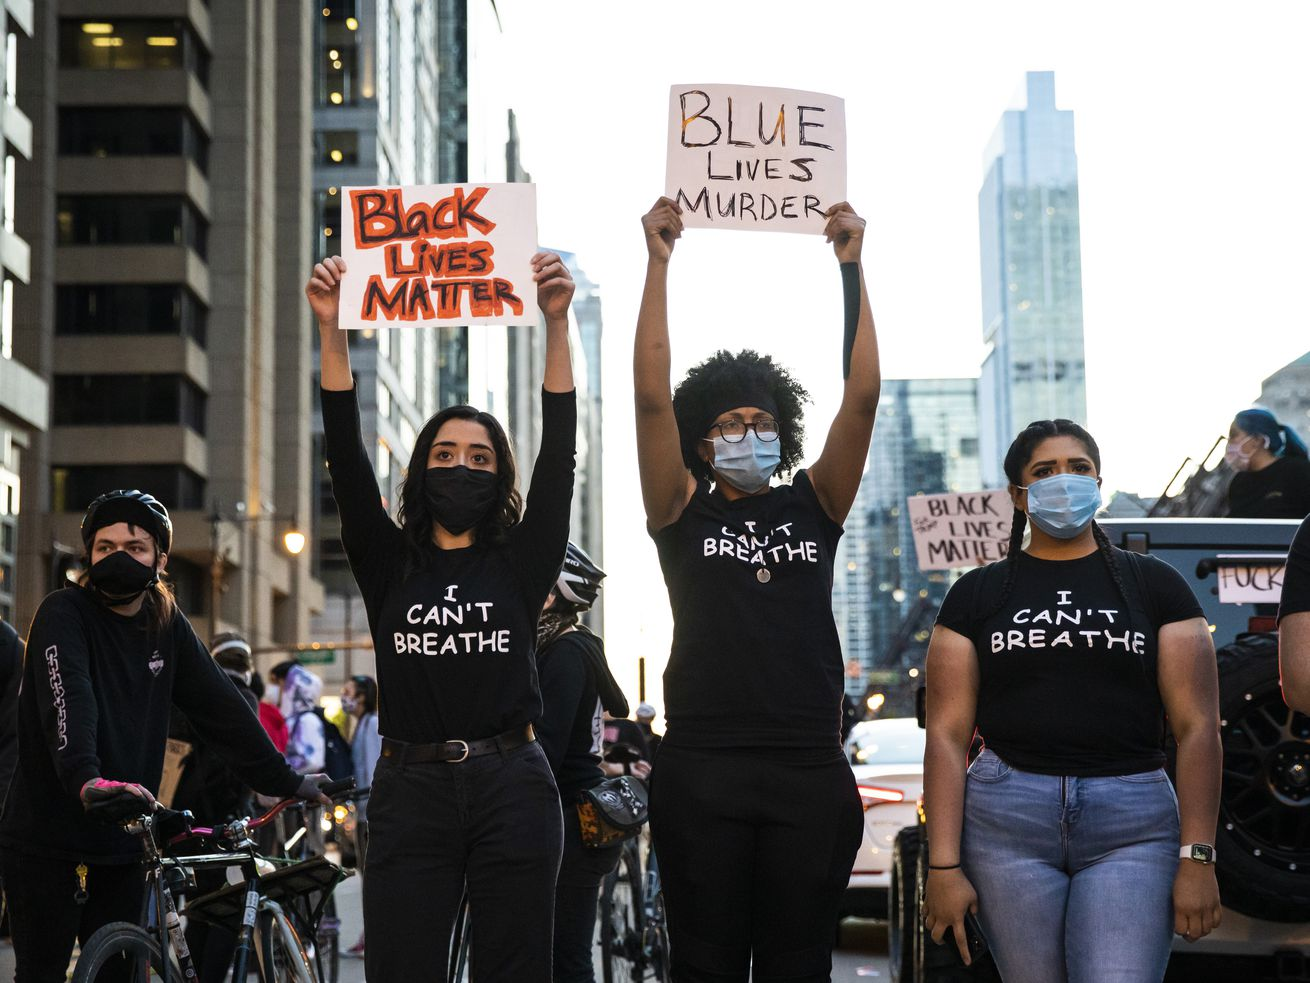 Protesters hold placards Saturday, May 30 in Chicago as they join national outrage over the death of George Floyd.